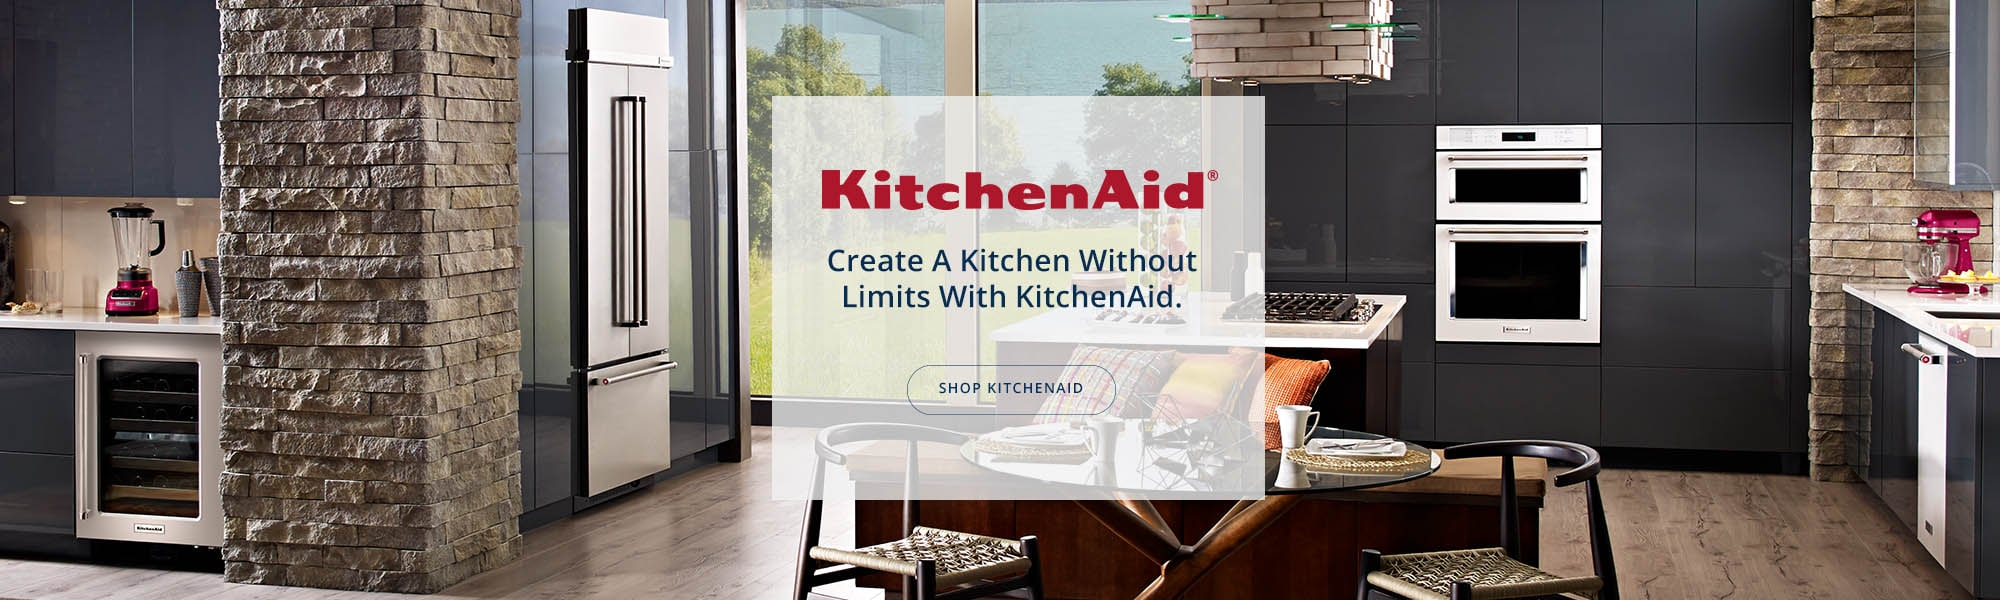 Kitchen Aid banner